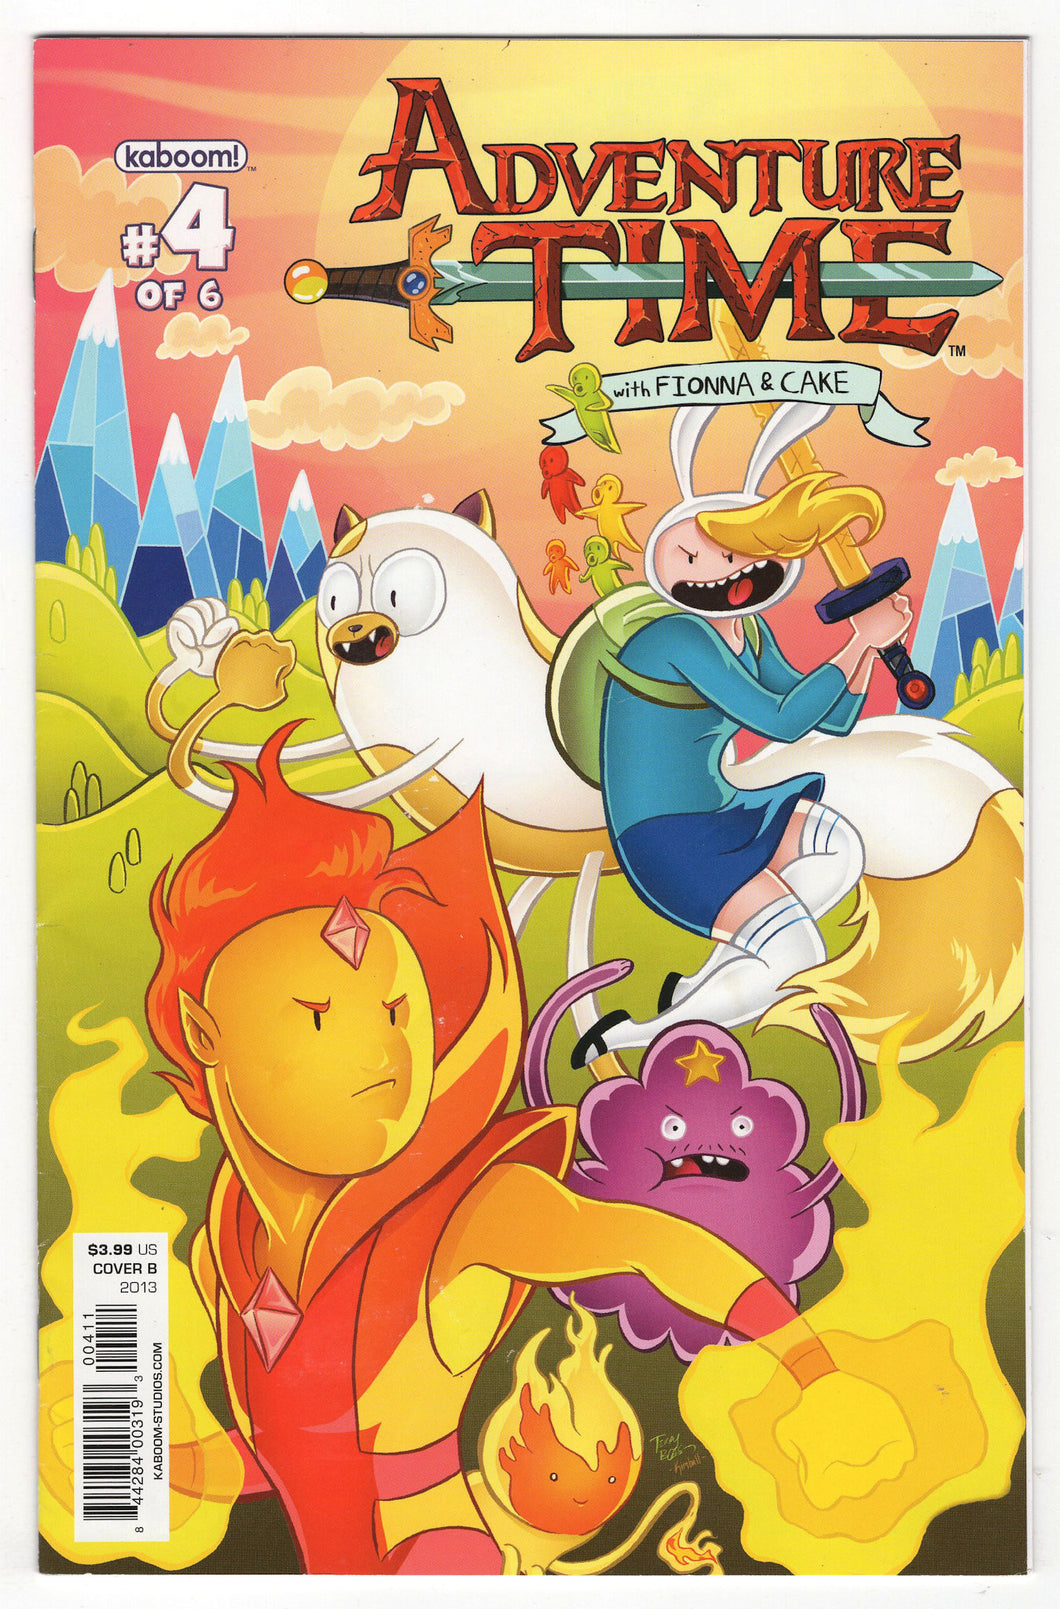 Adventure Time Fionna & Cake #4 Variant Front Cover